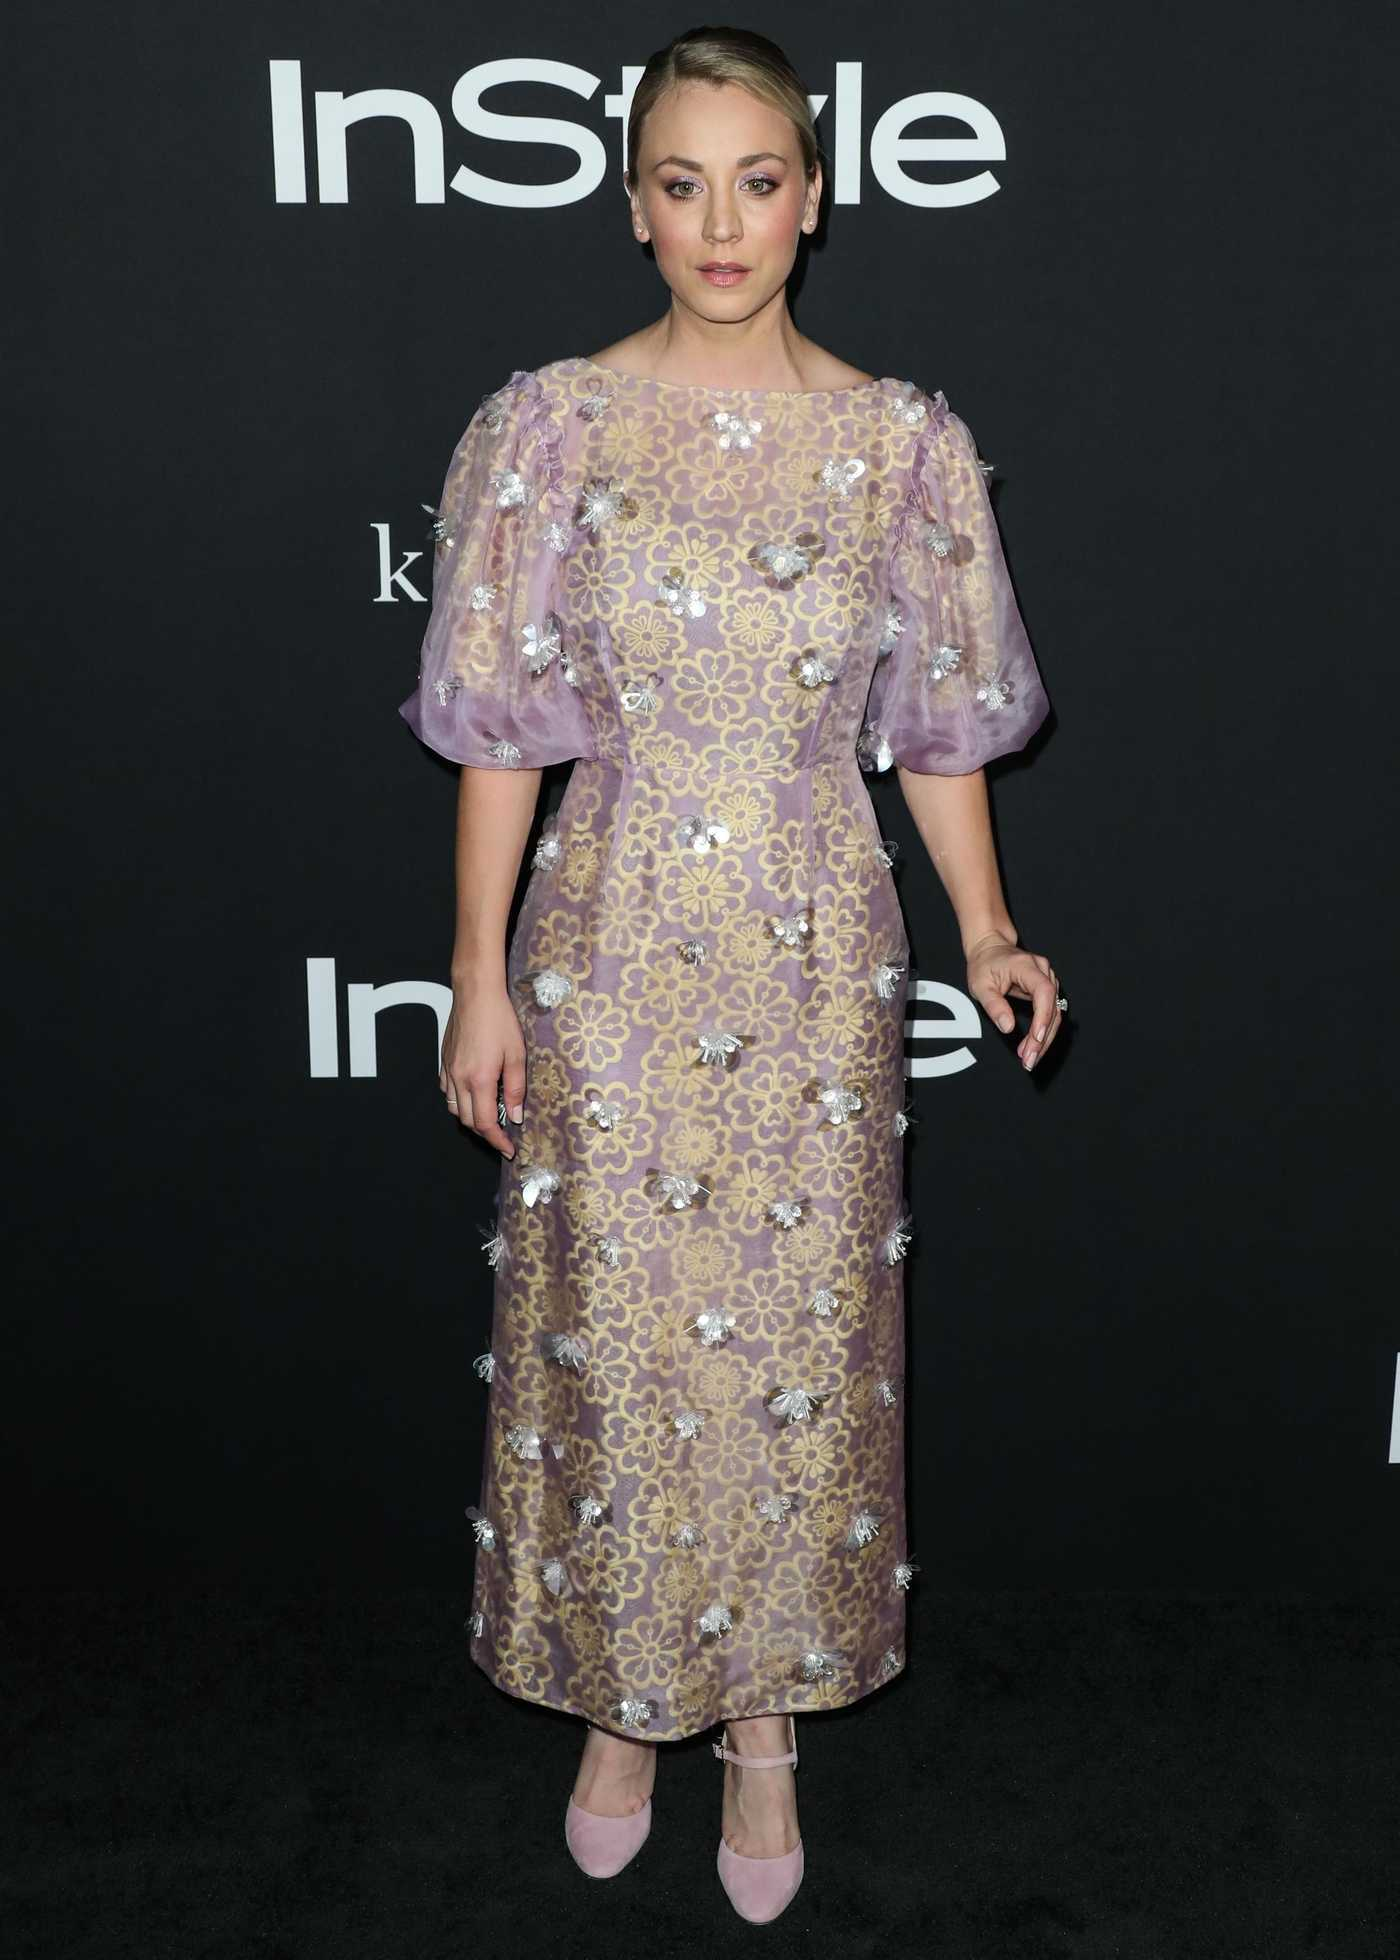 Kaley Cuoco Attends the 4th Annual InStyle Awards at The Getty Center in Los Angeles 10/22/2018